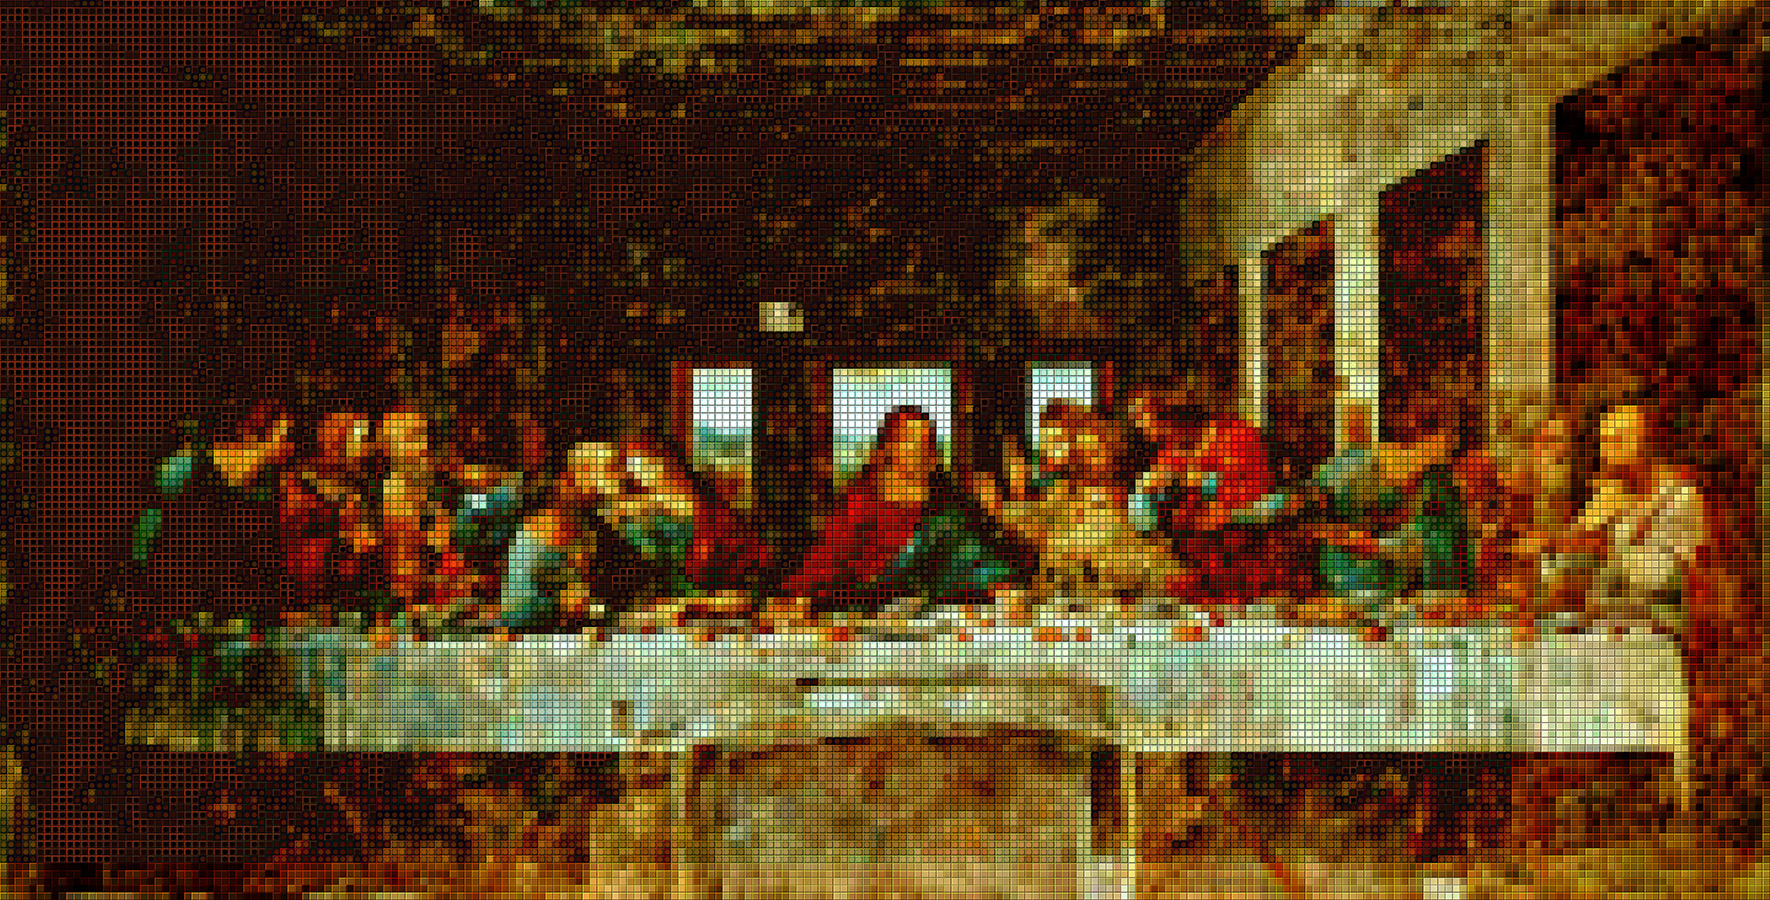 Last Supper - Mosaic